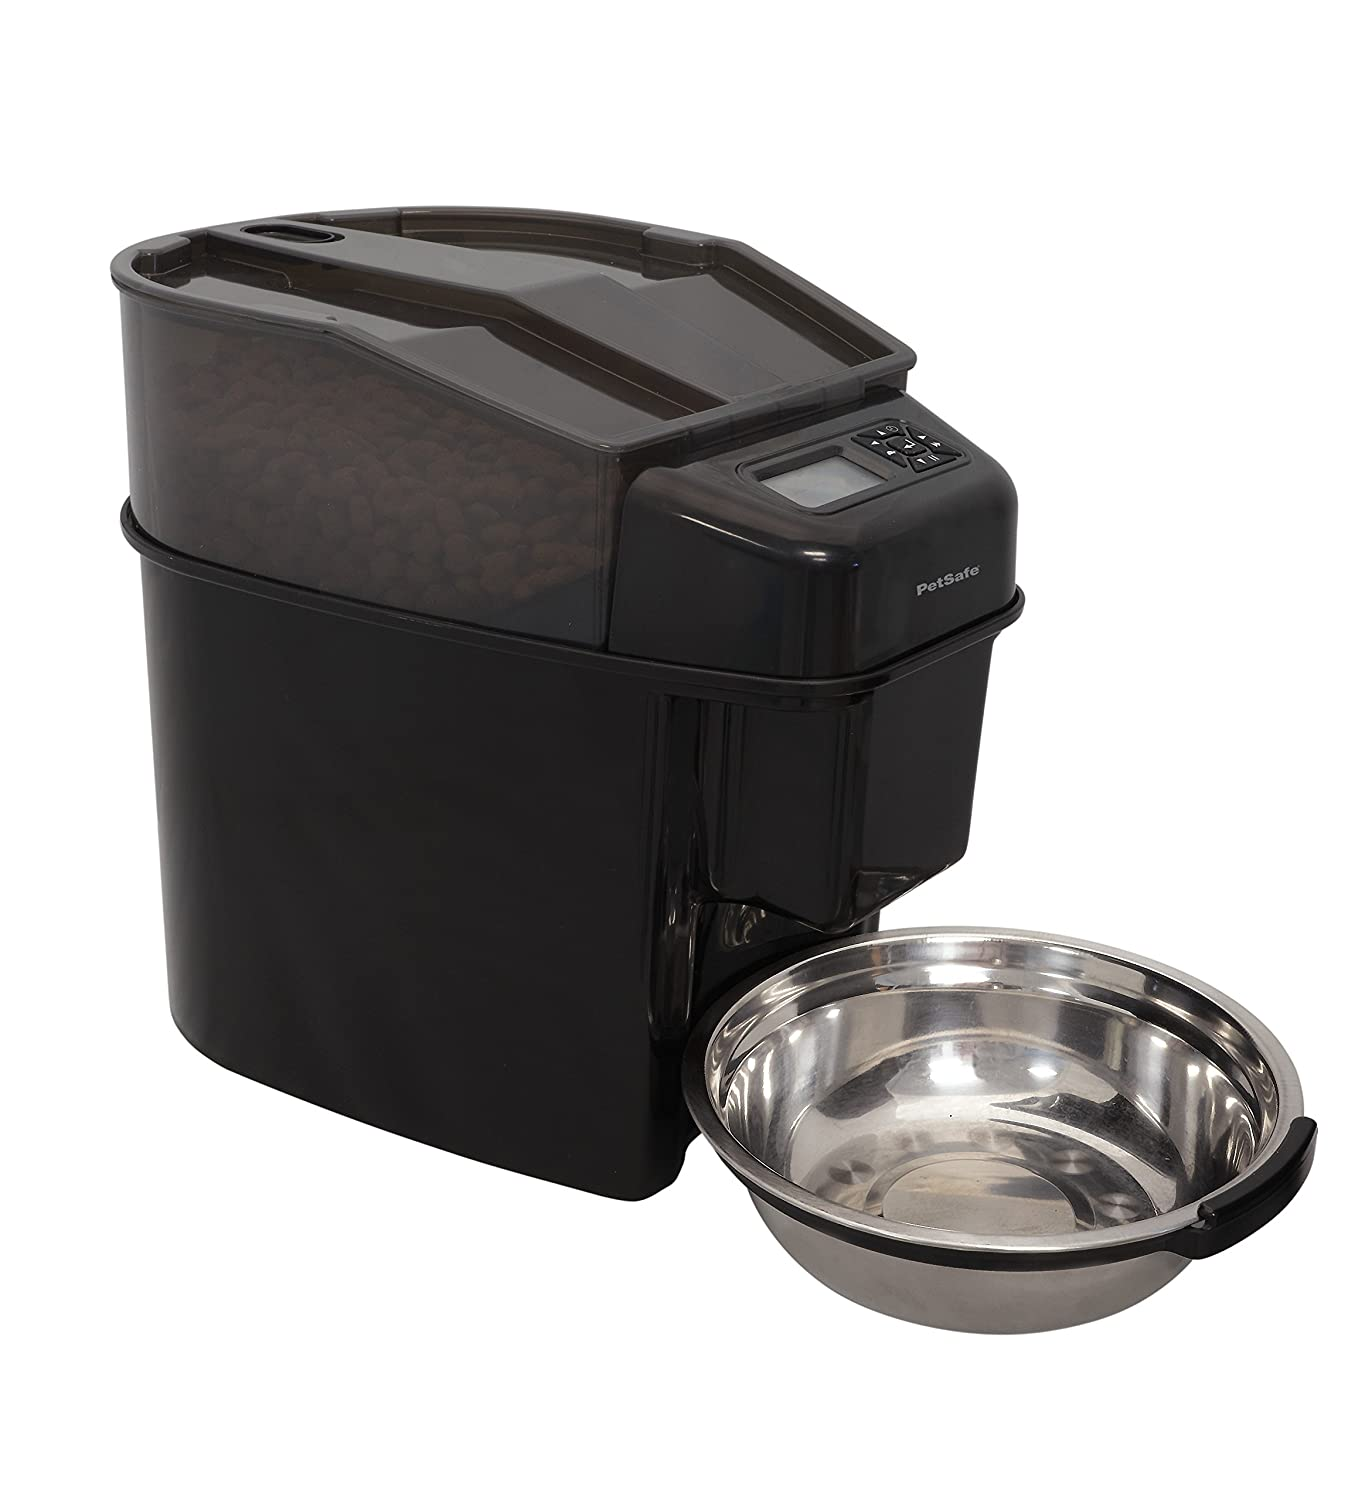 PetSafe Healthy Pet 12-meal feeder